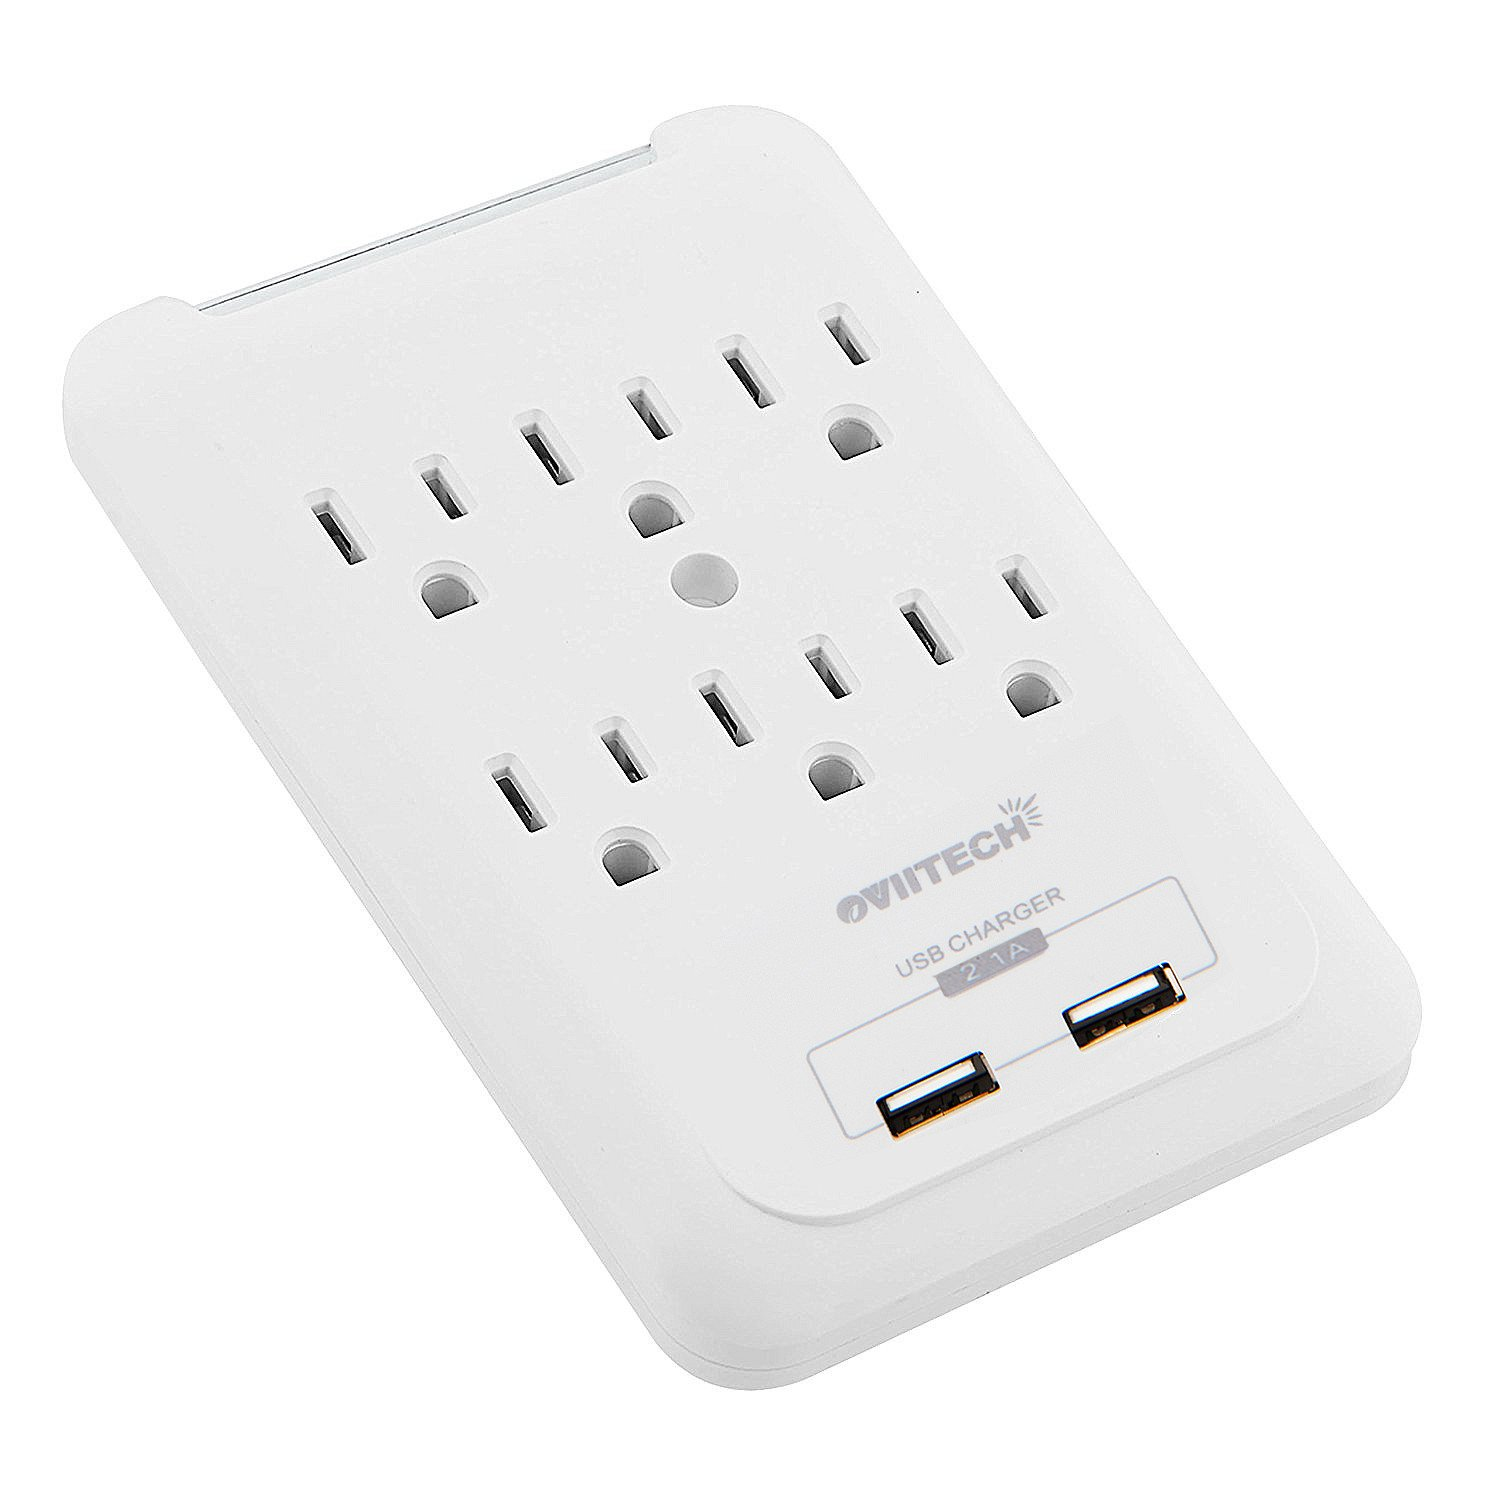 Multi-function Wall Mount Outlet Adapter, Surge Protector Charging Station, OviiTech Dual 2.1AMP USB Charging Ports,6 AC Socket Outlet Plugs,White,ETL Certified